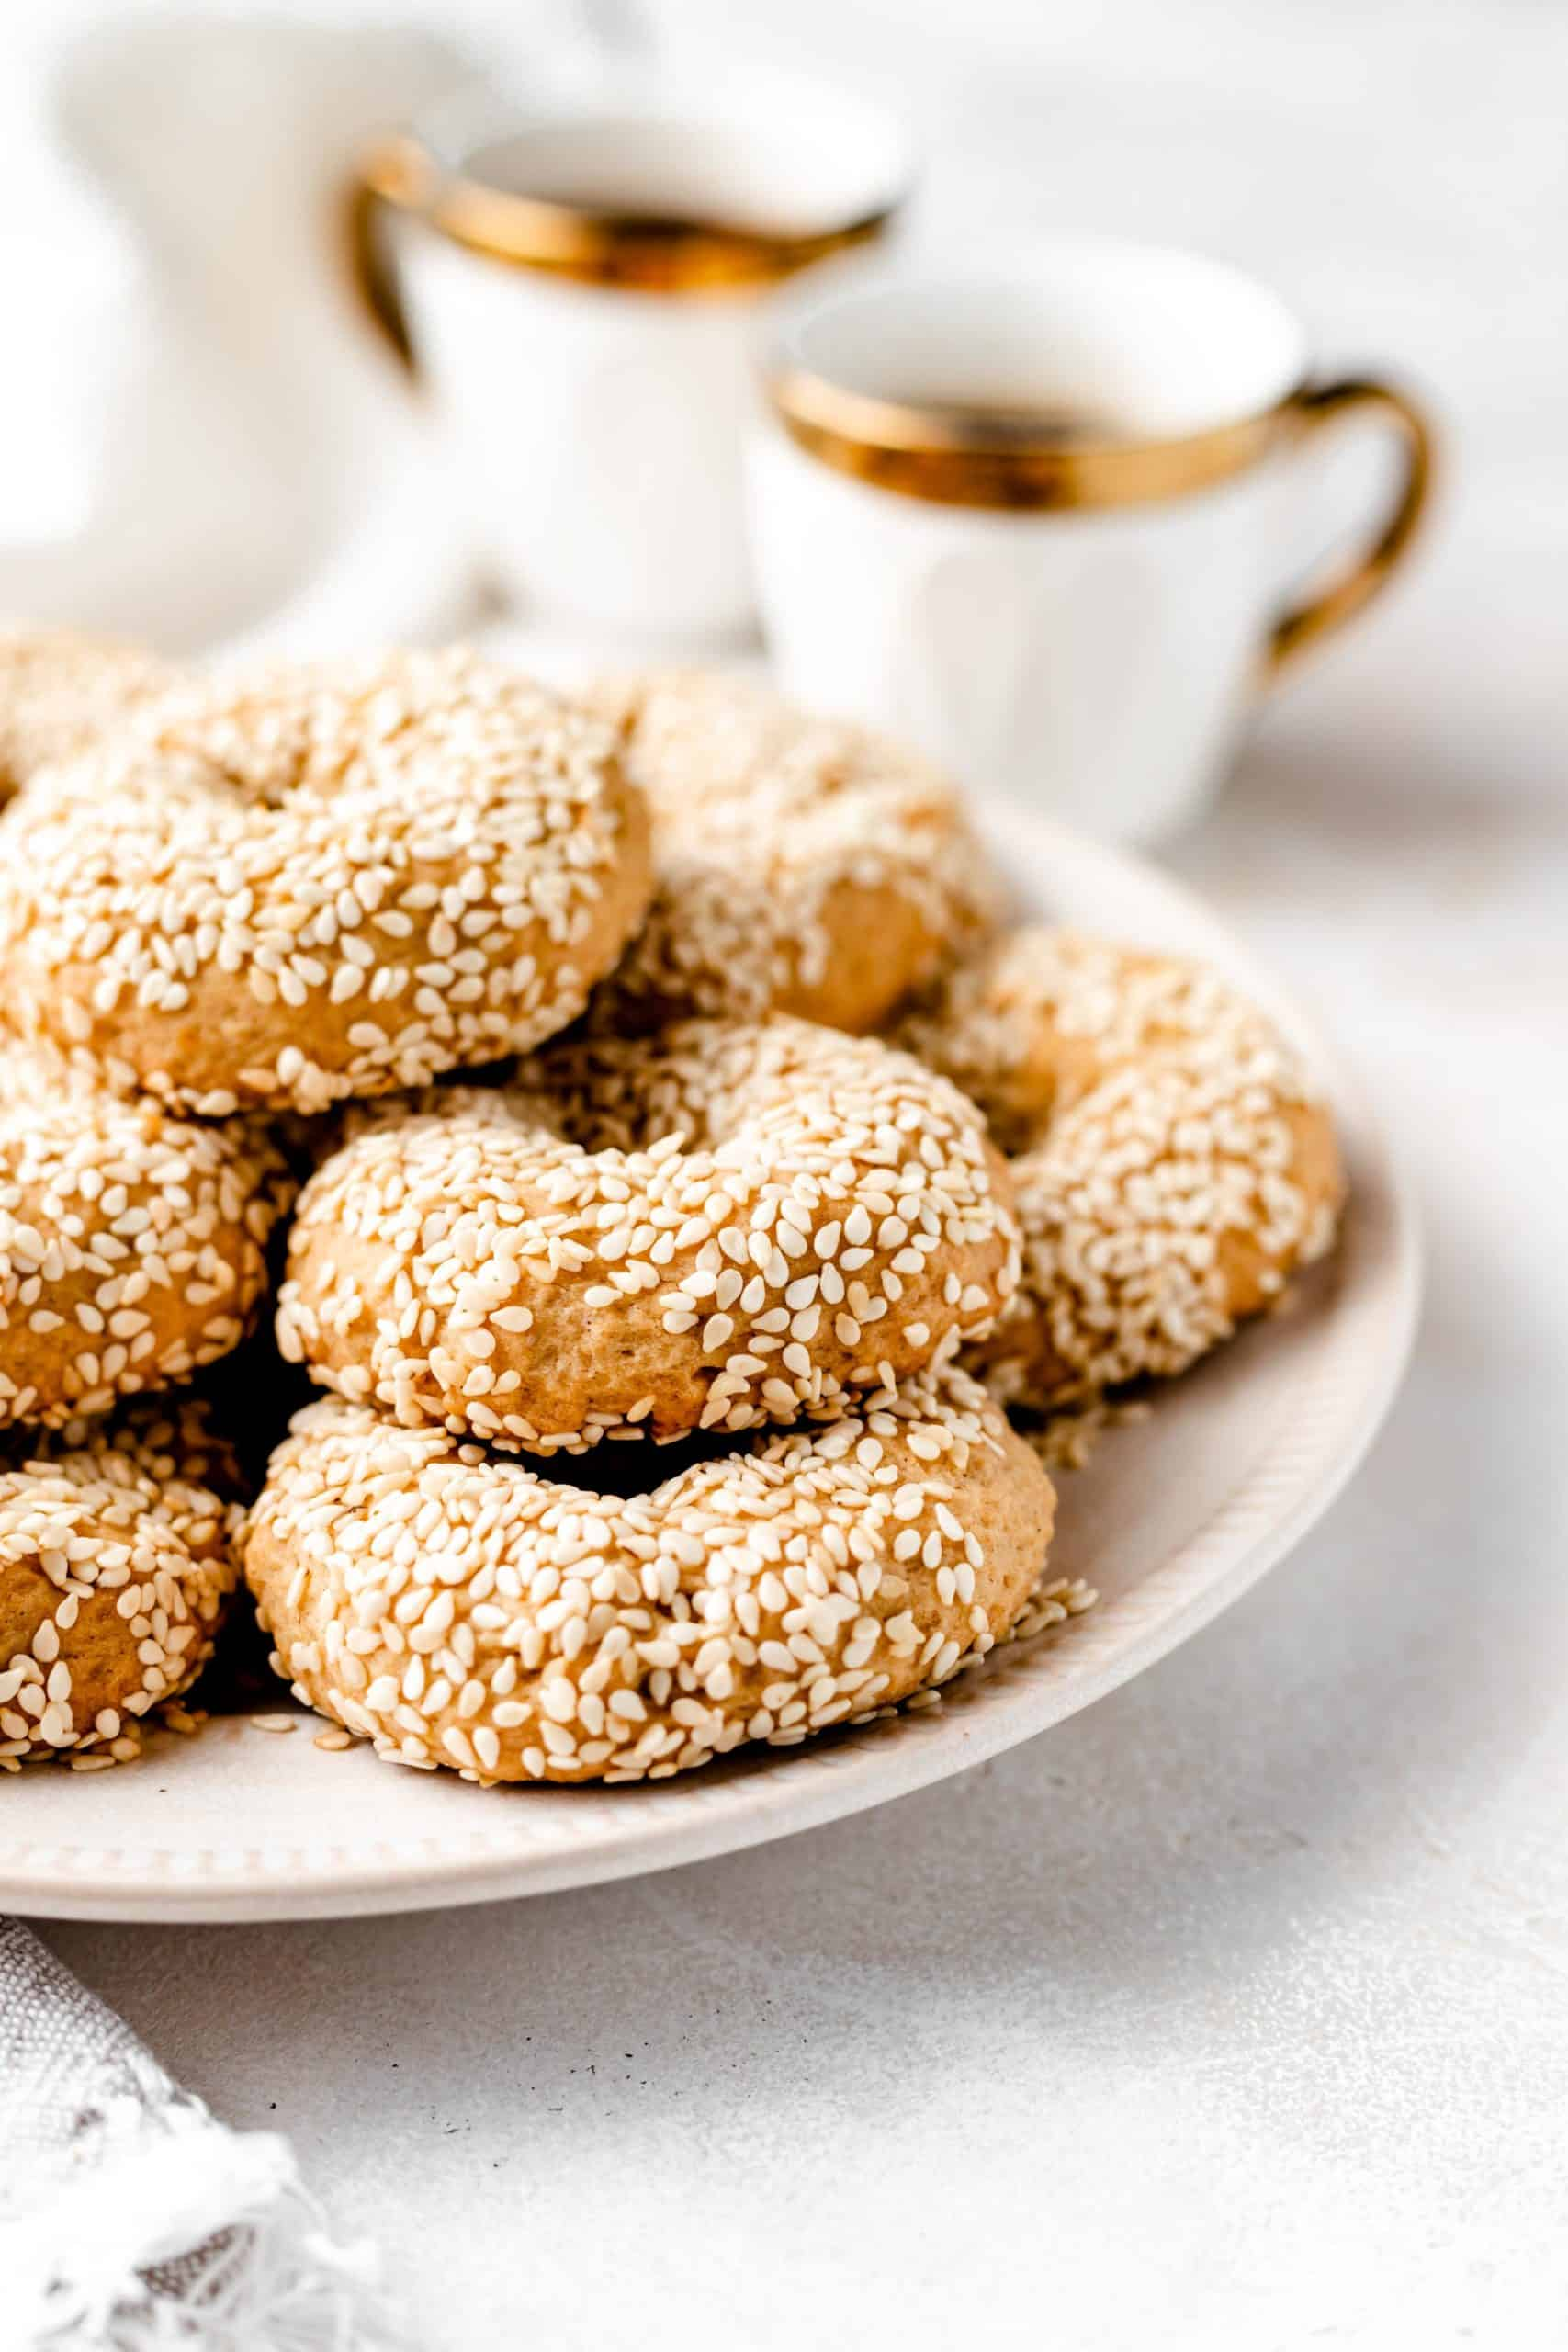 sesame cookies stacked on a plate